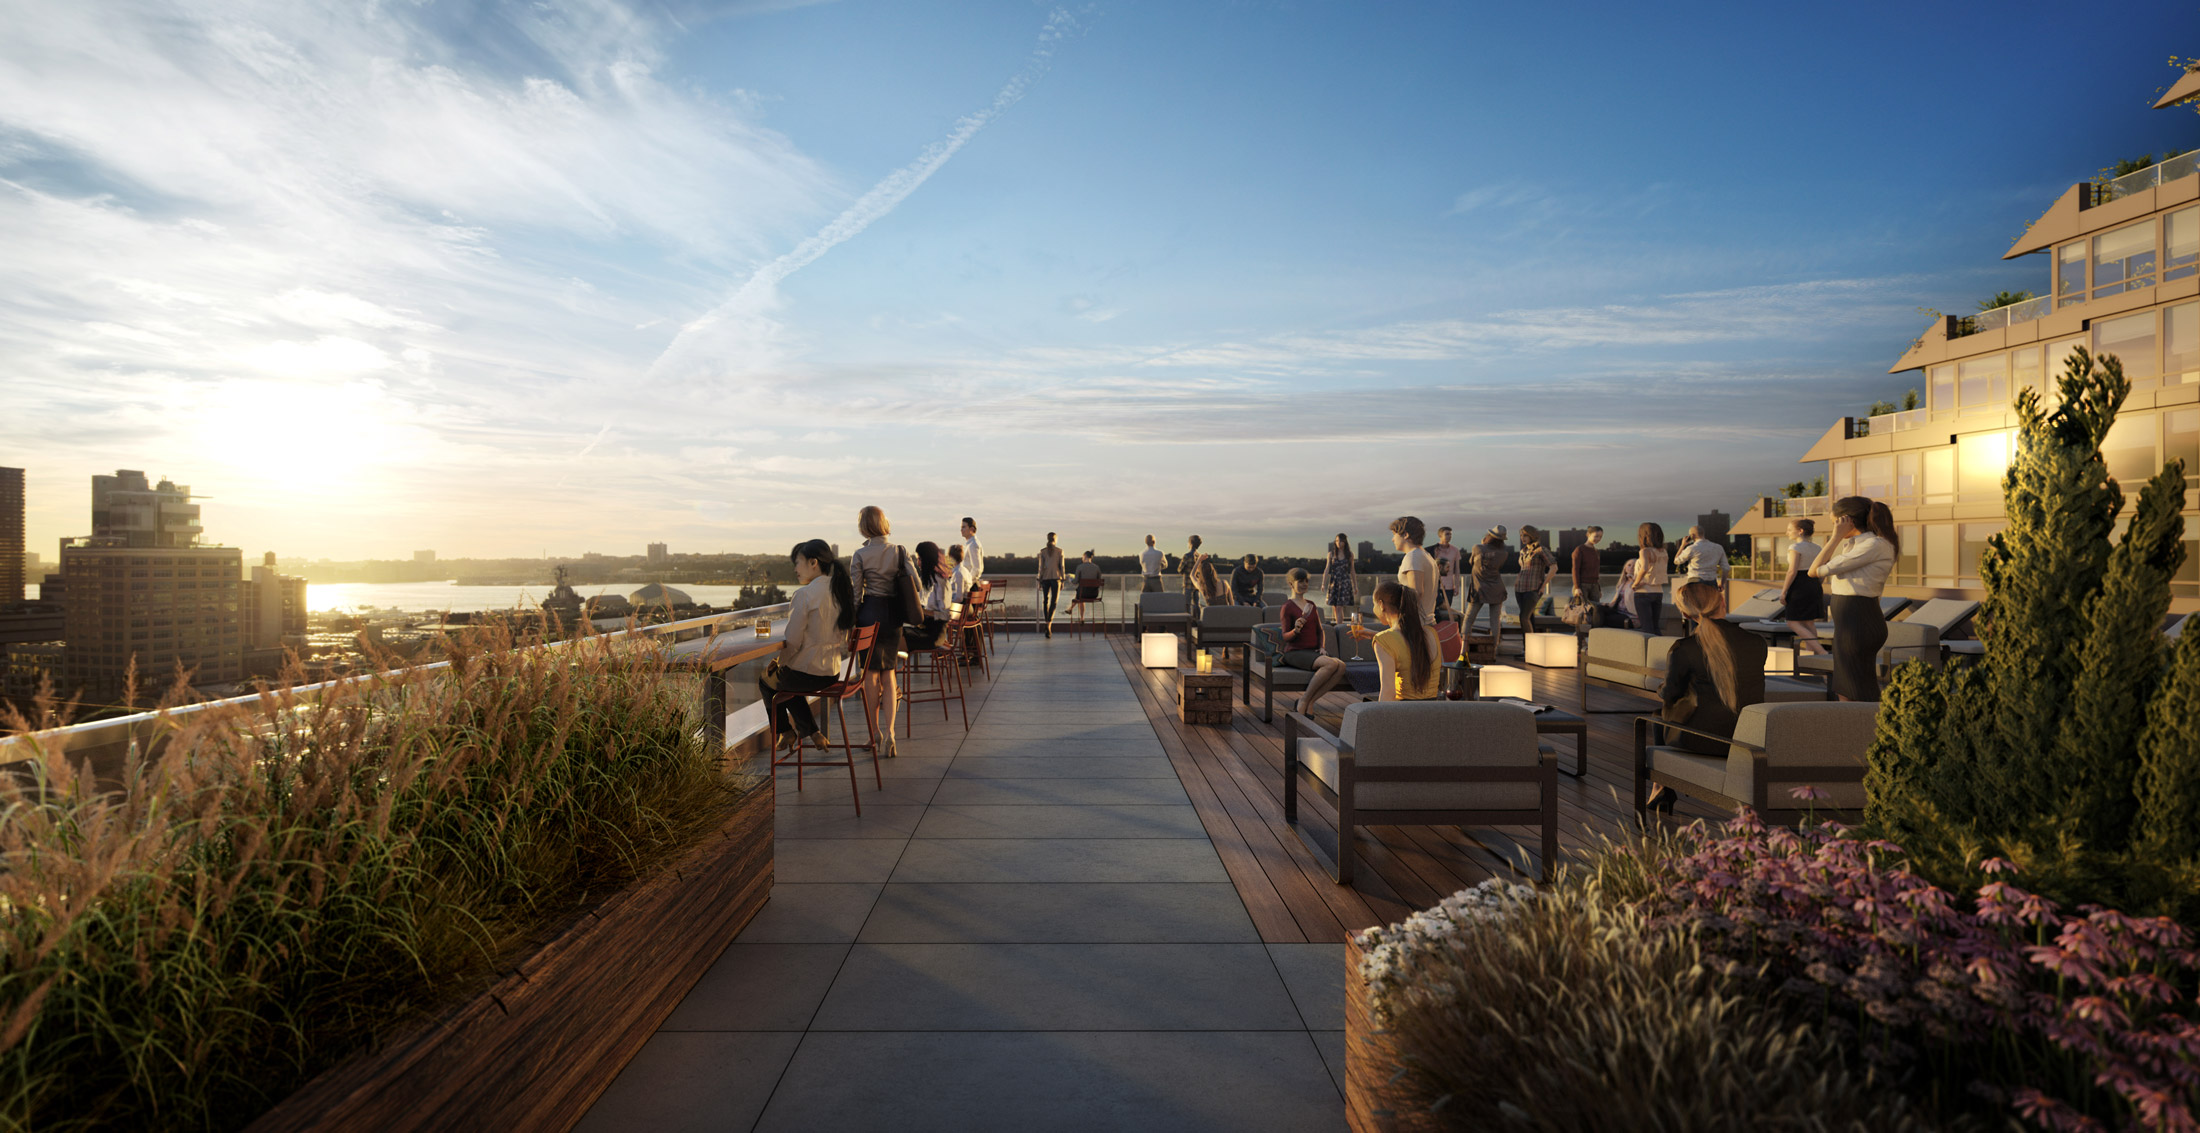 Architectural Rendering of the rooftop of the 525 West 52nd Street project located in Hell's Kitchen, New York City